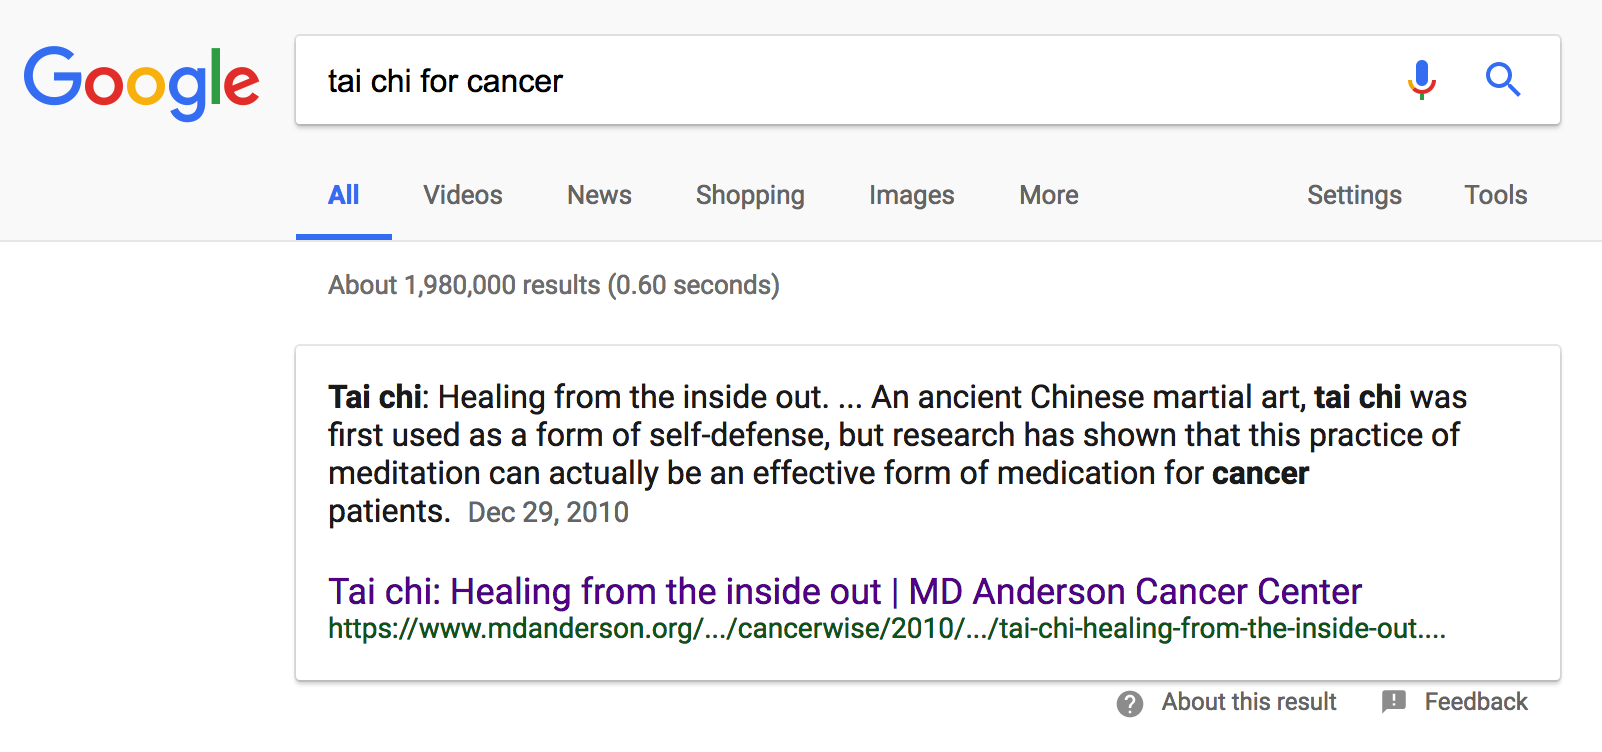 tai-chi-for-cancer.png